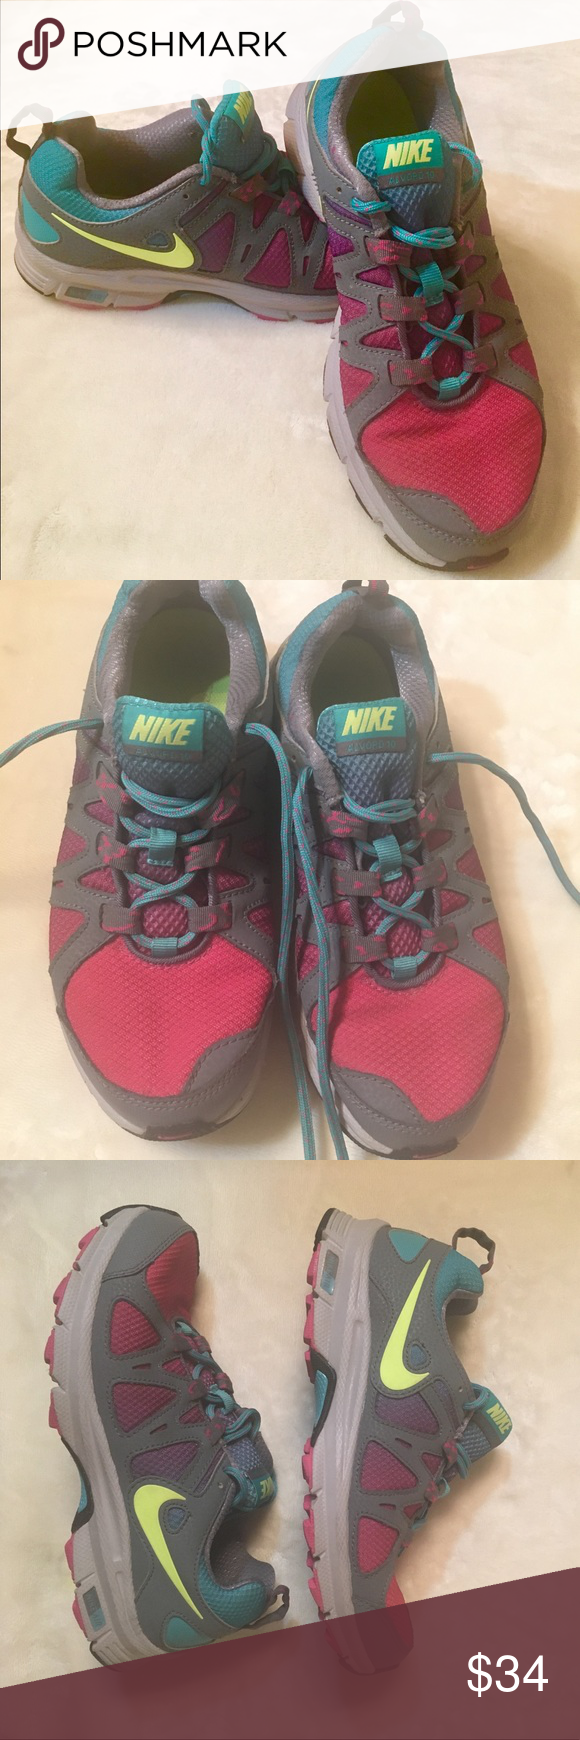 Nike Alvord 10 running shoes Nike Alvord 10 shoes. Women's size 7.5. Colors  are neon yellow check mark, hot pink front and turquoise shoelaces and  ankle ...